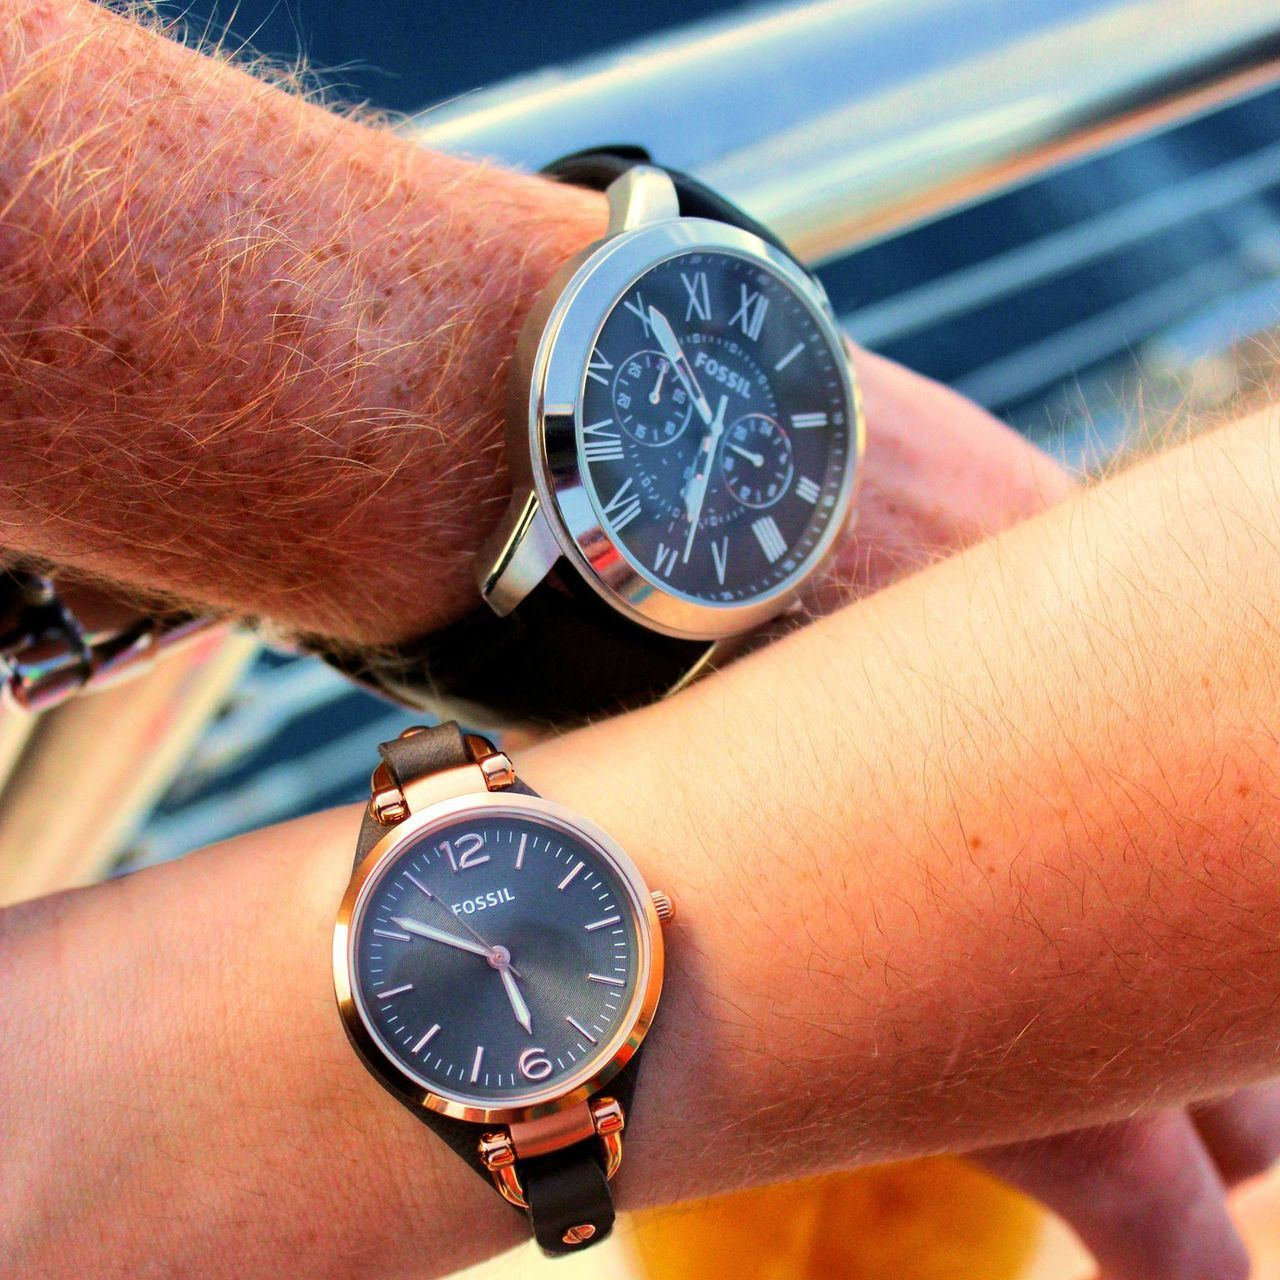 Close-Up Of Hands With Wristwatches